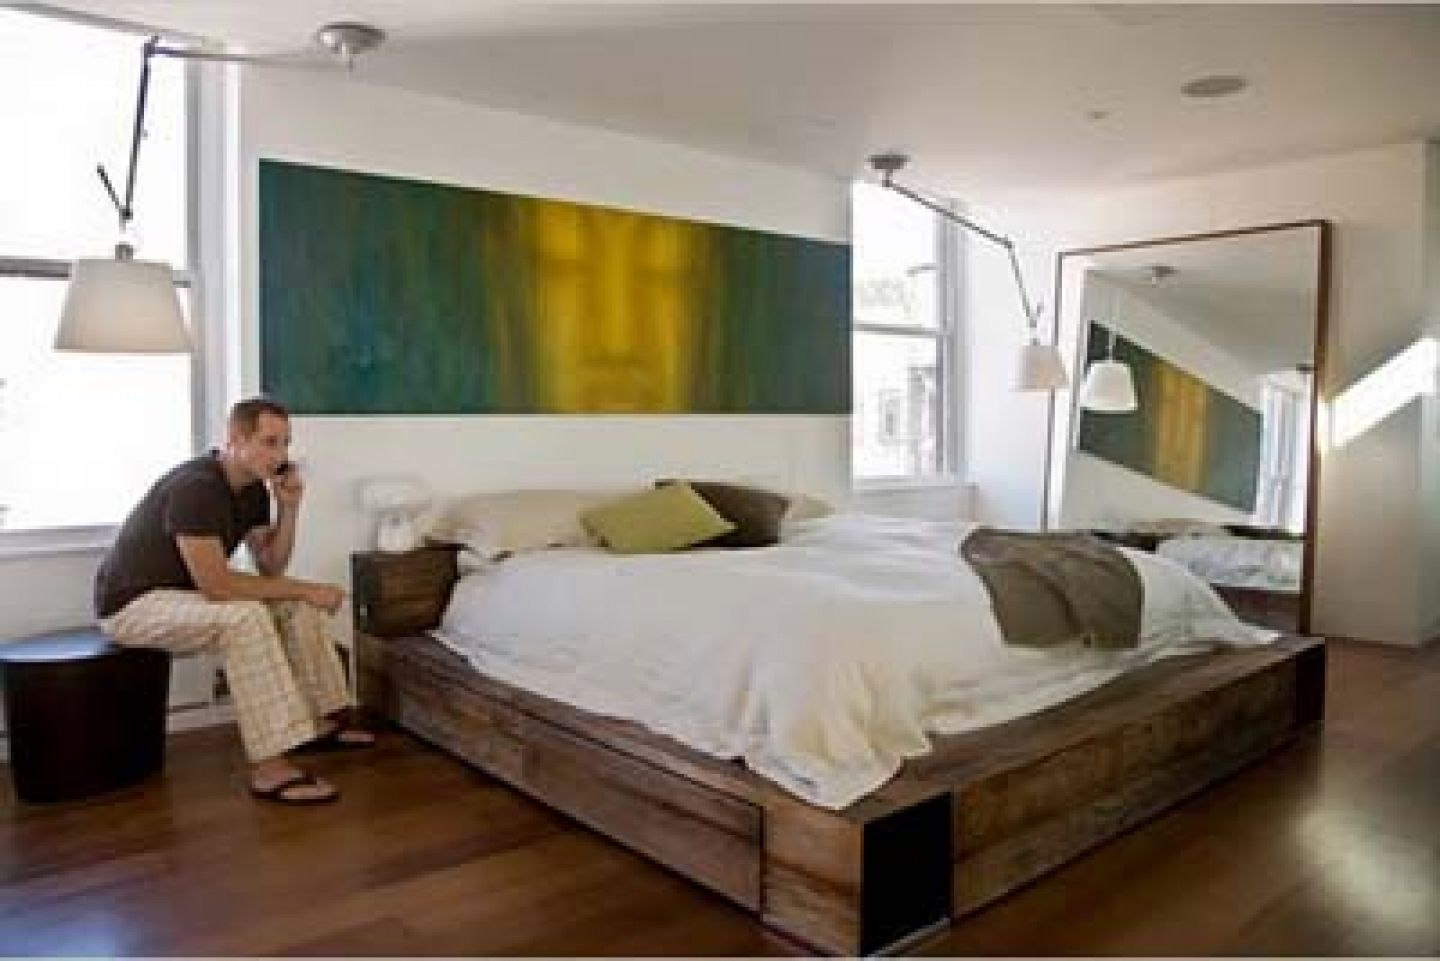 Bedroom Designs For Guys Bedroom Ideas For College Guys  Design Ideas 20172018